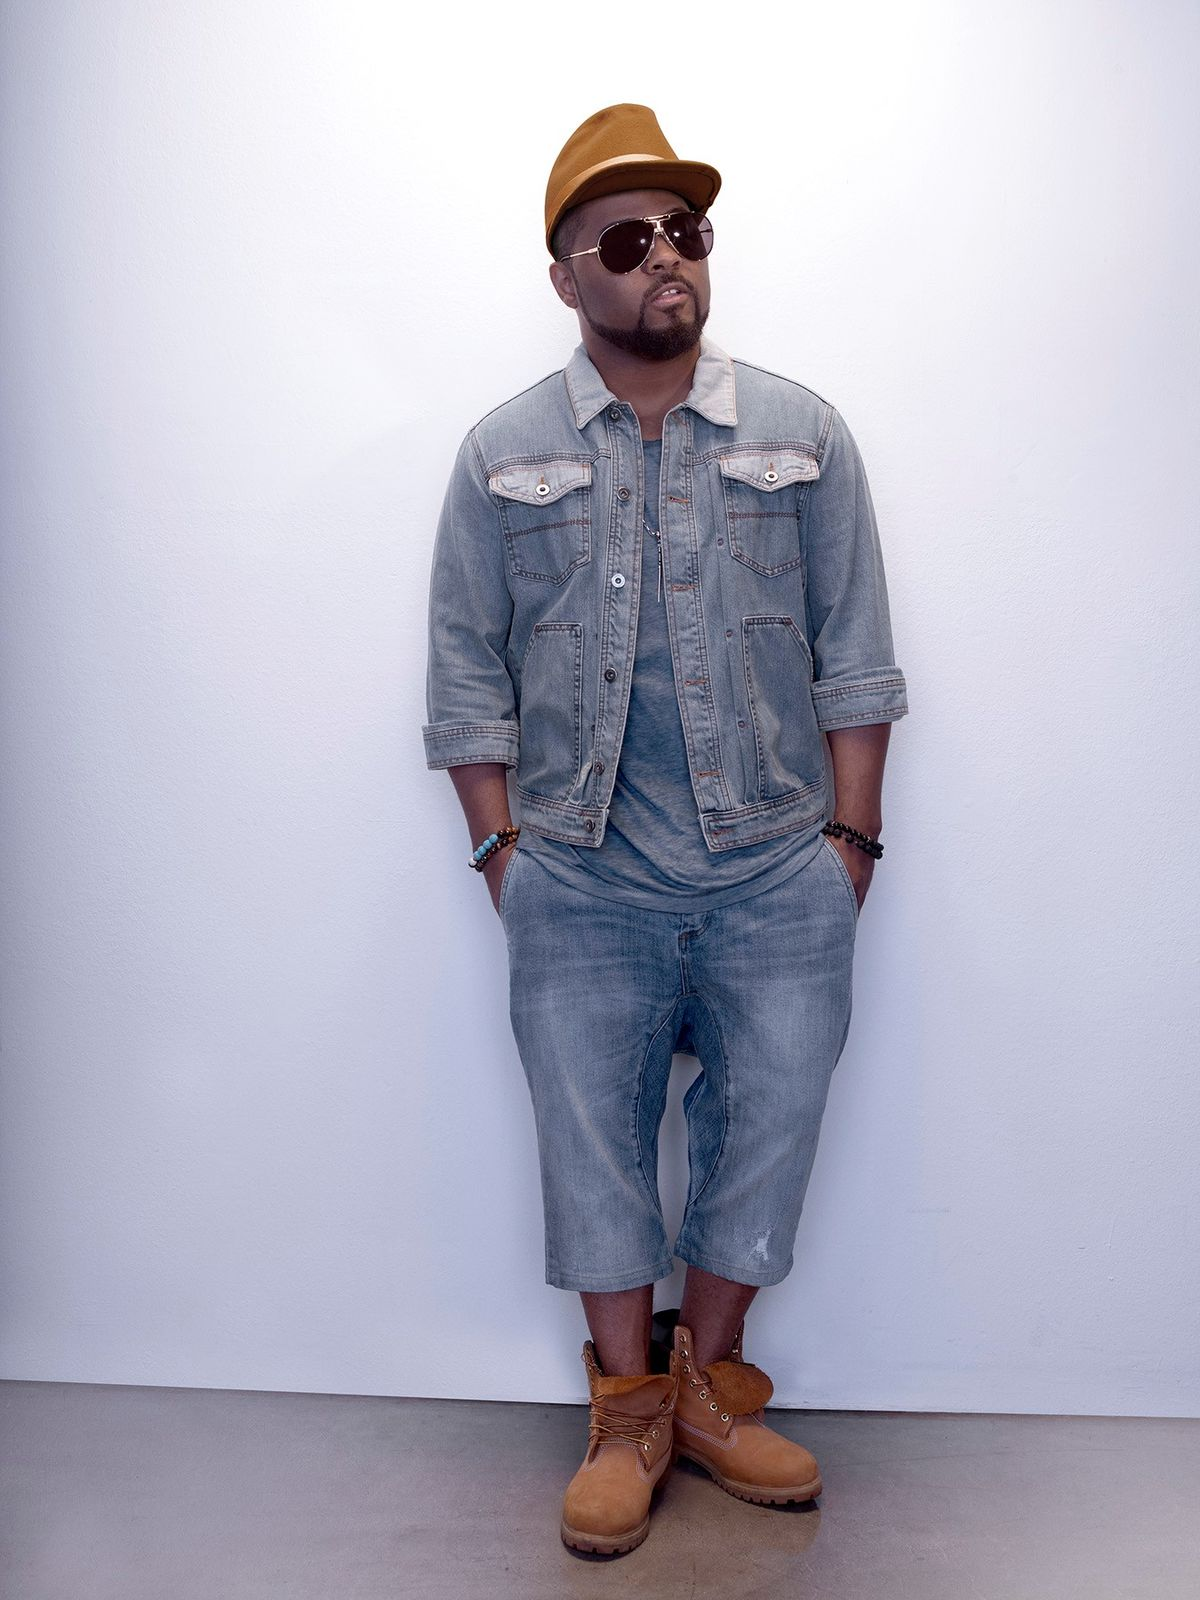 musiq soulchild wikipedia johnson